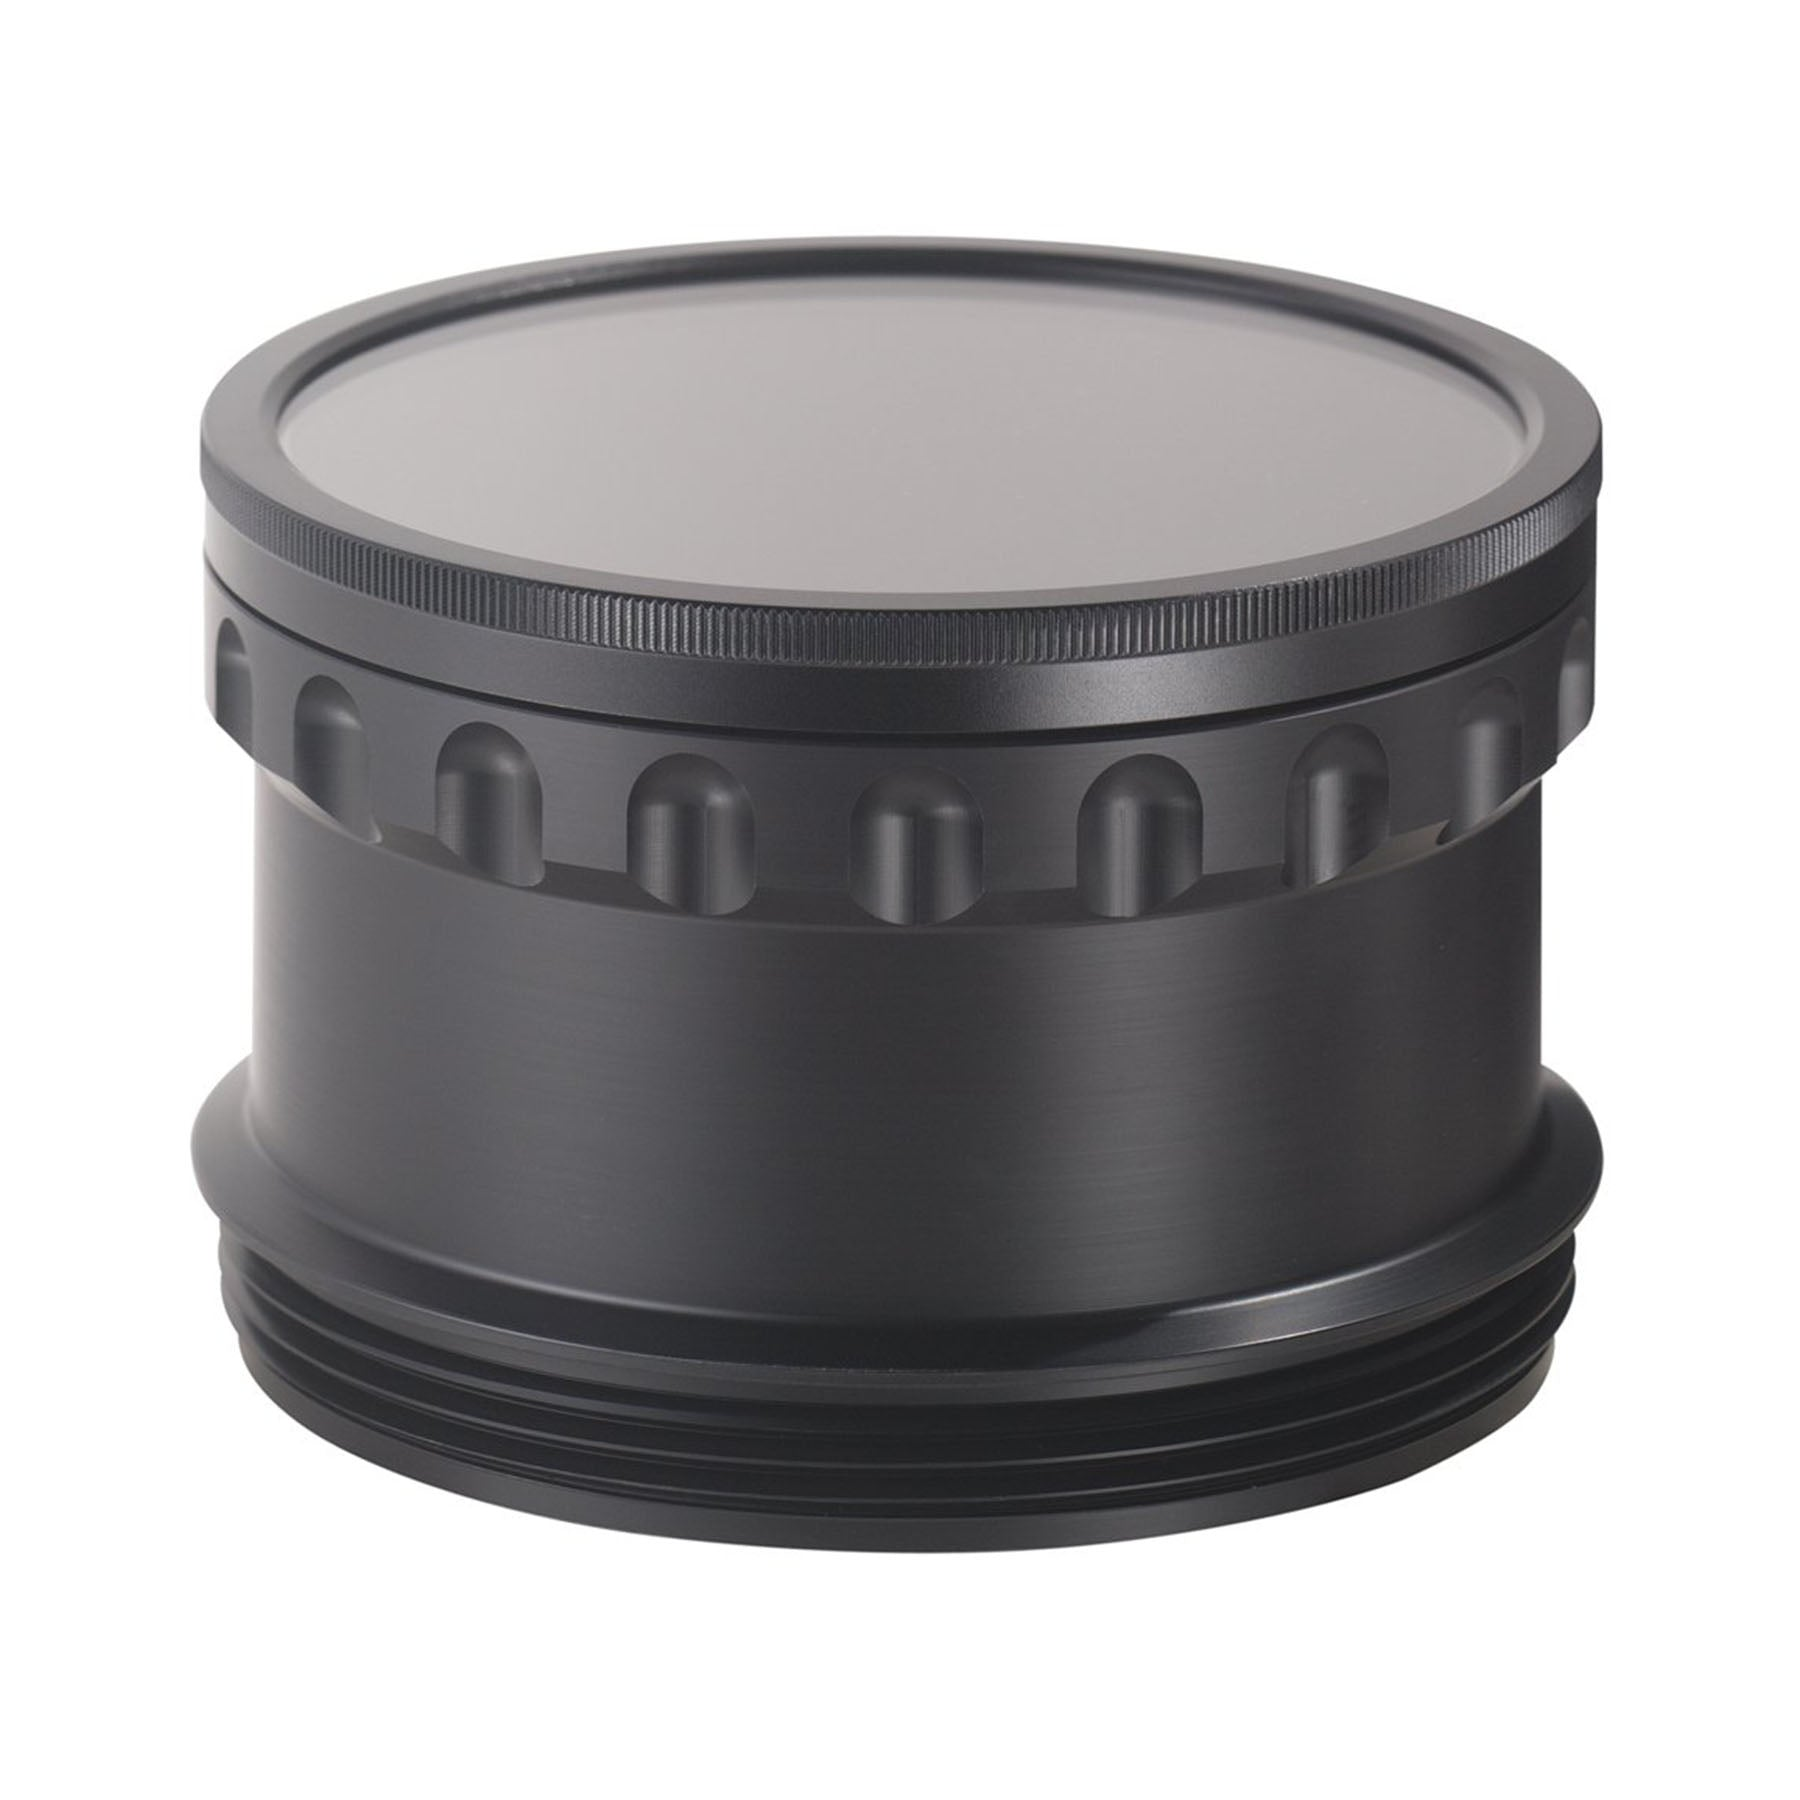 AquaTech P-100 Lens Port for Underwater Housing